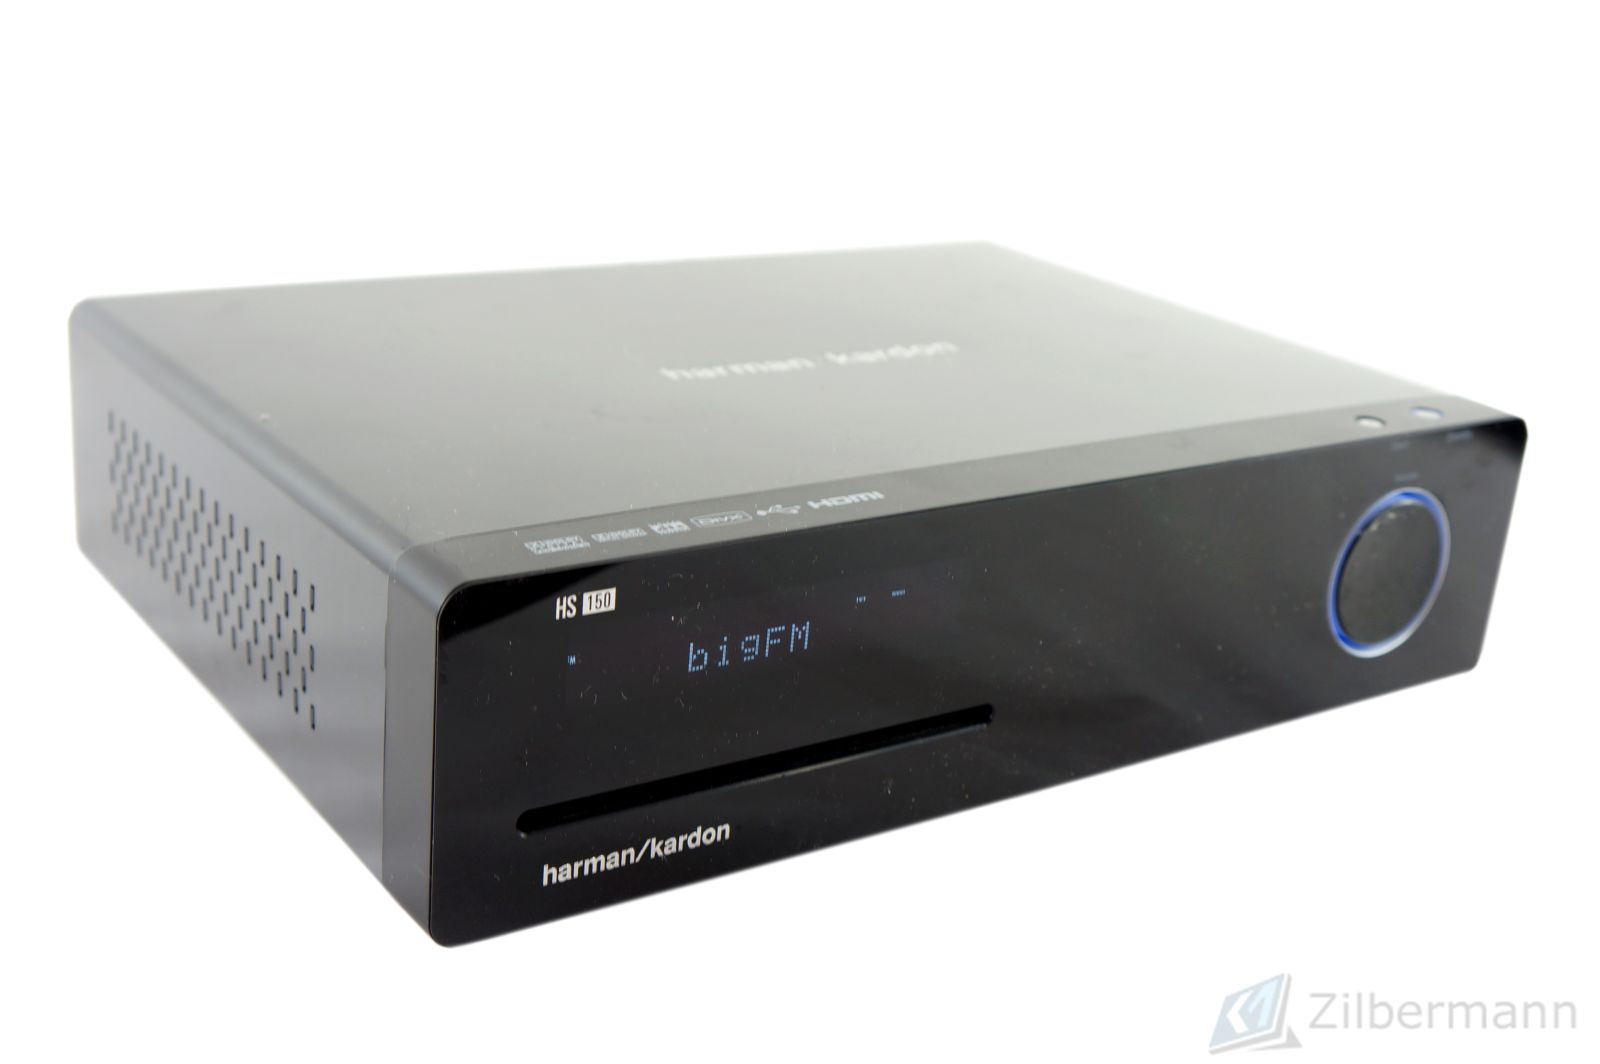 Harman_Kardon_HS_150_2.1_Player_Receiver_HDMI_USB_02